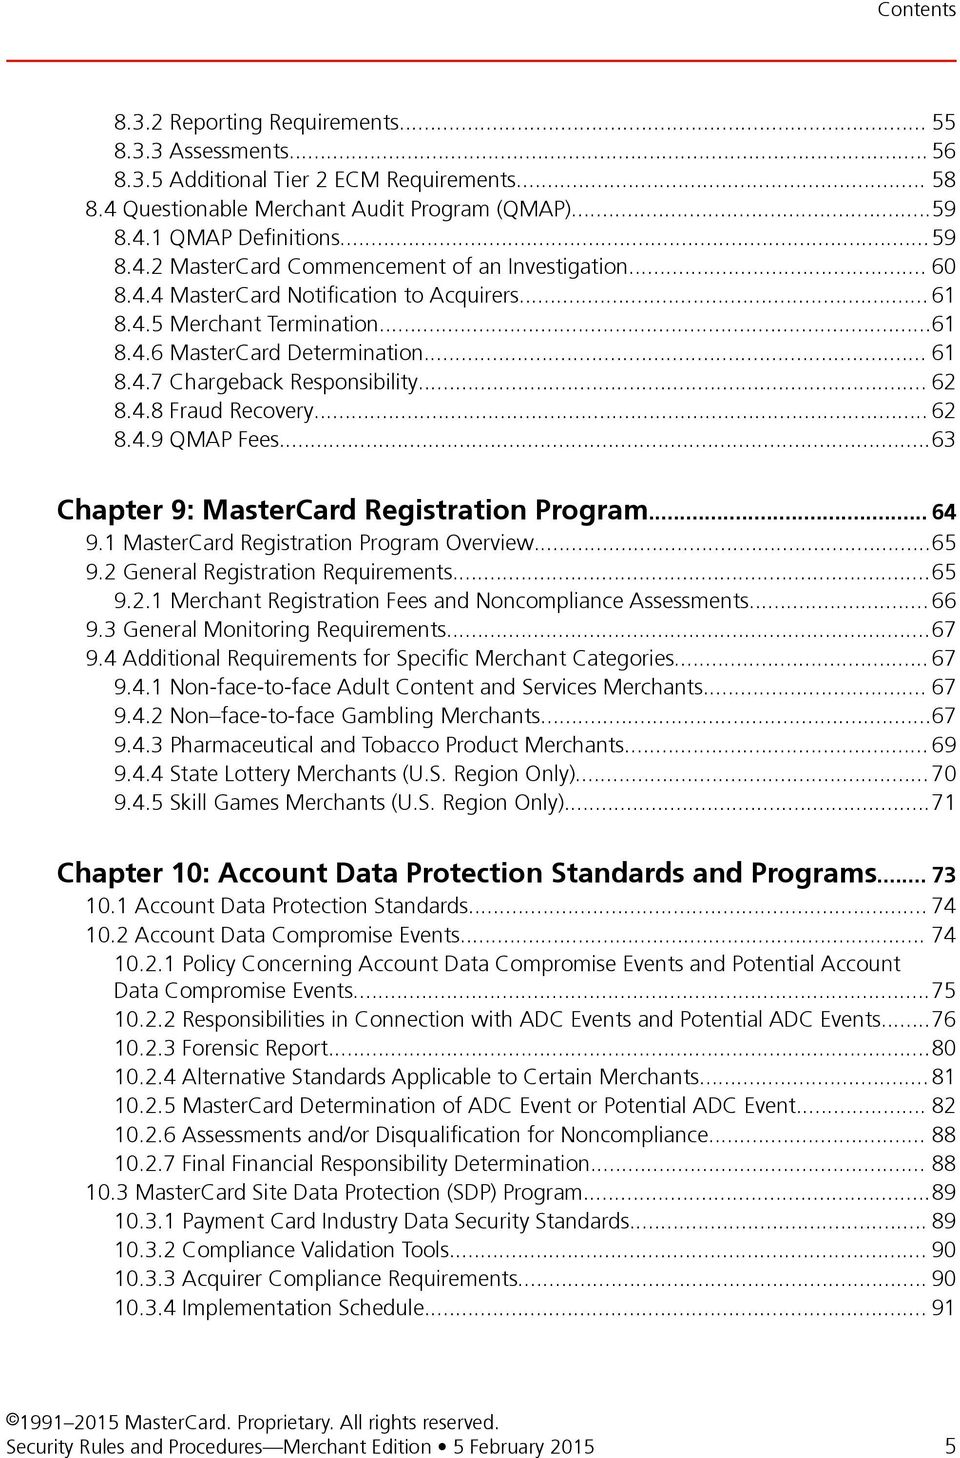 ..63 Chapter 9: MasterCard Registration Program... 64 9.1 MasterCard Registration Program Overview...65 9.2 General Registration Requirements...65 9.2.1 Merchant Registration Fees and Noncompliance Assessments.